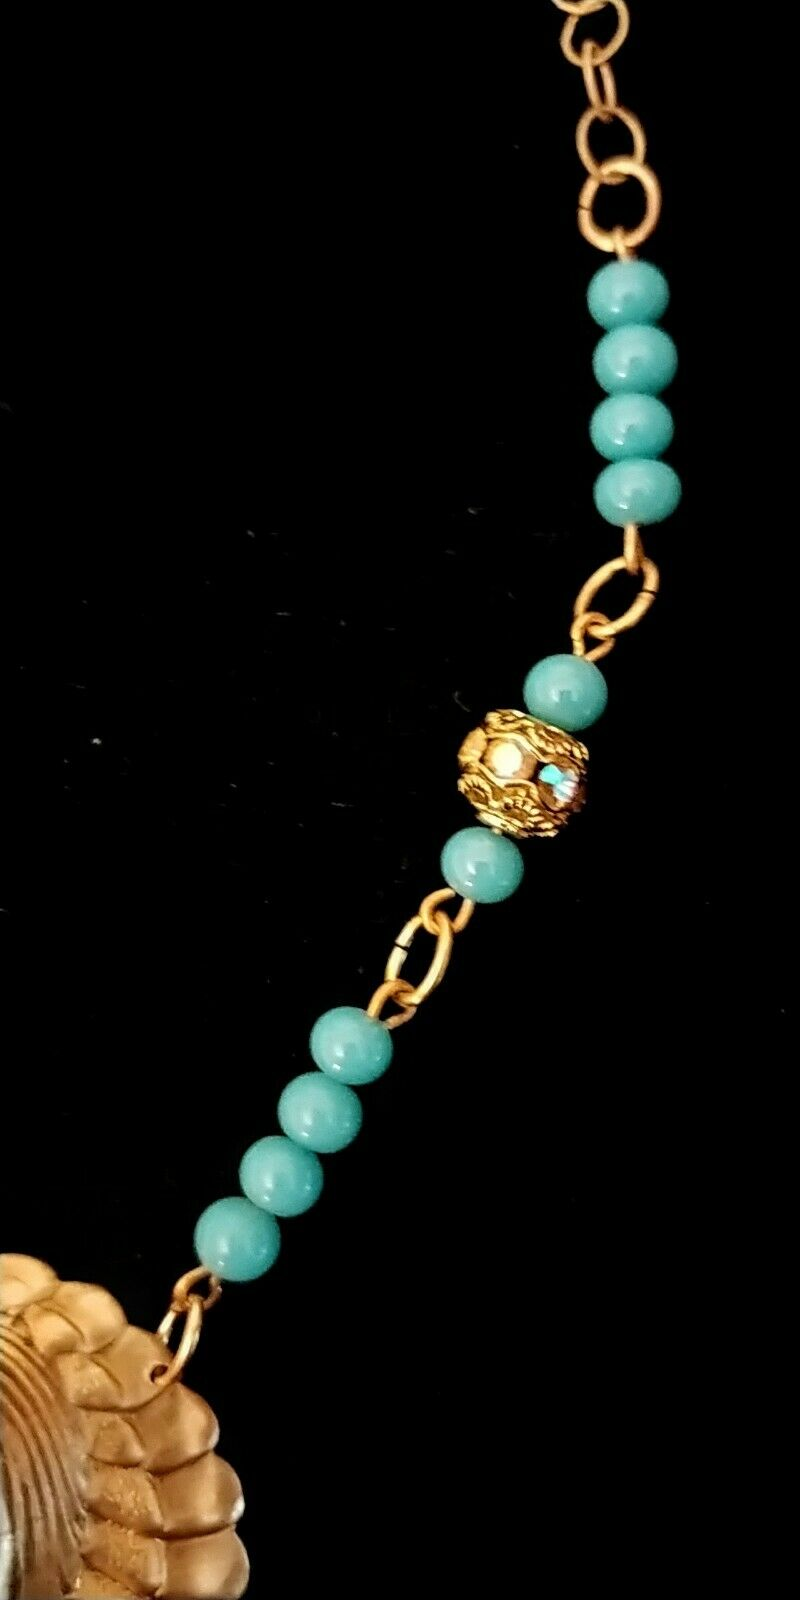 Vintage Egyptian Revival Necklace - image 8